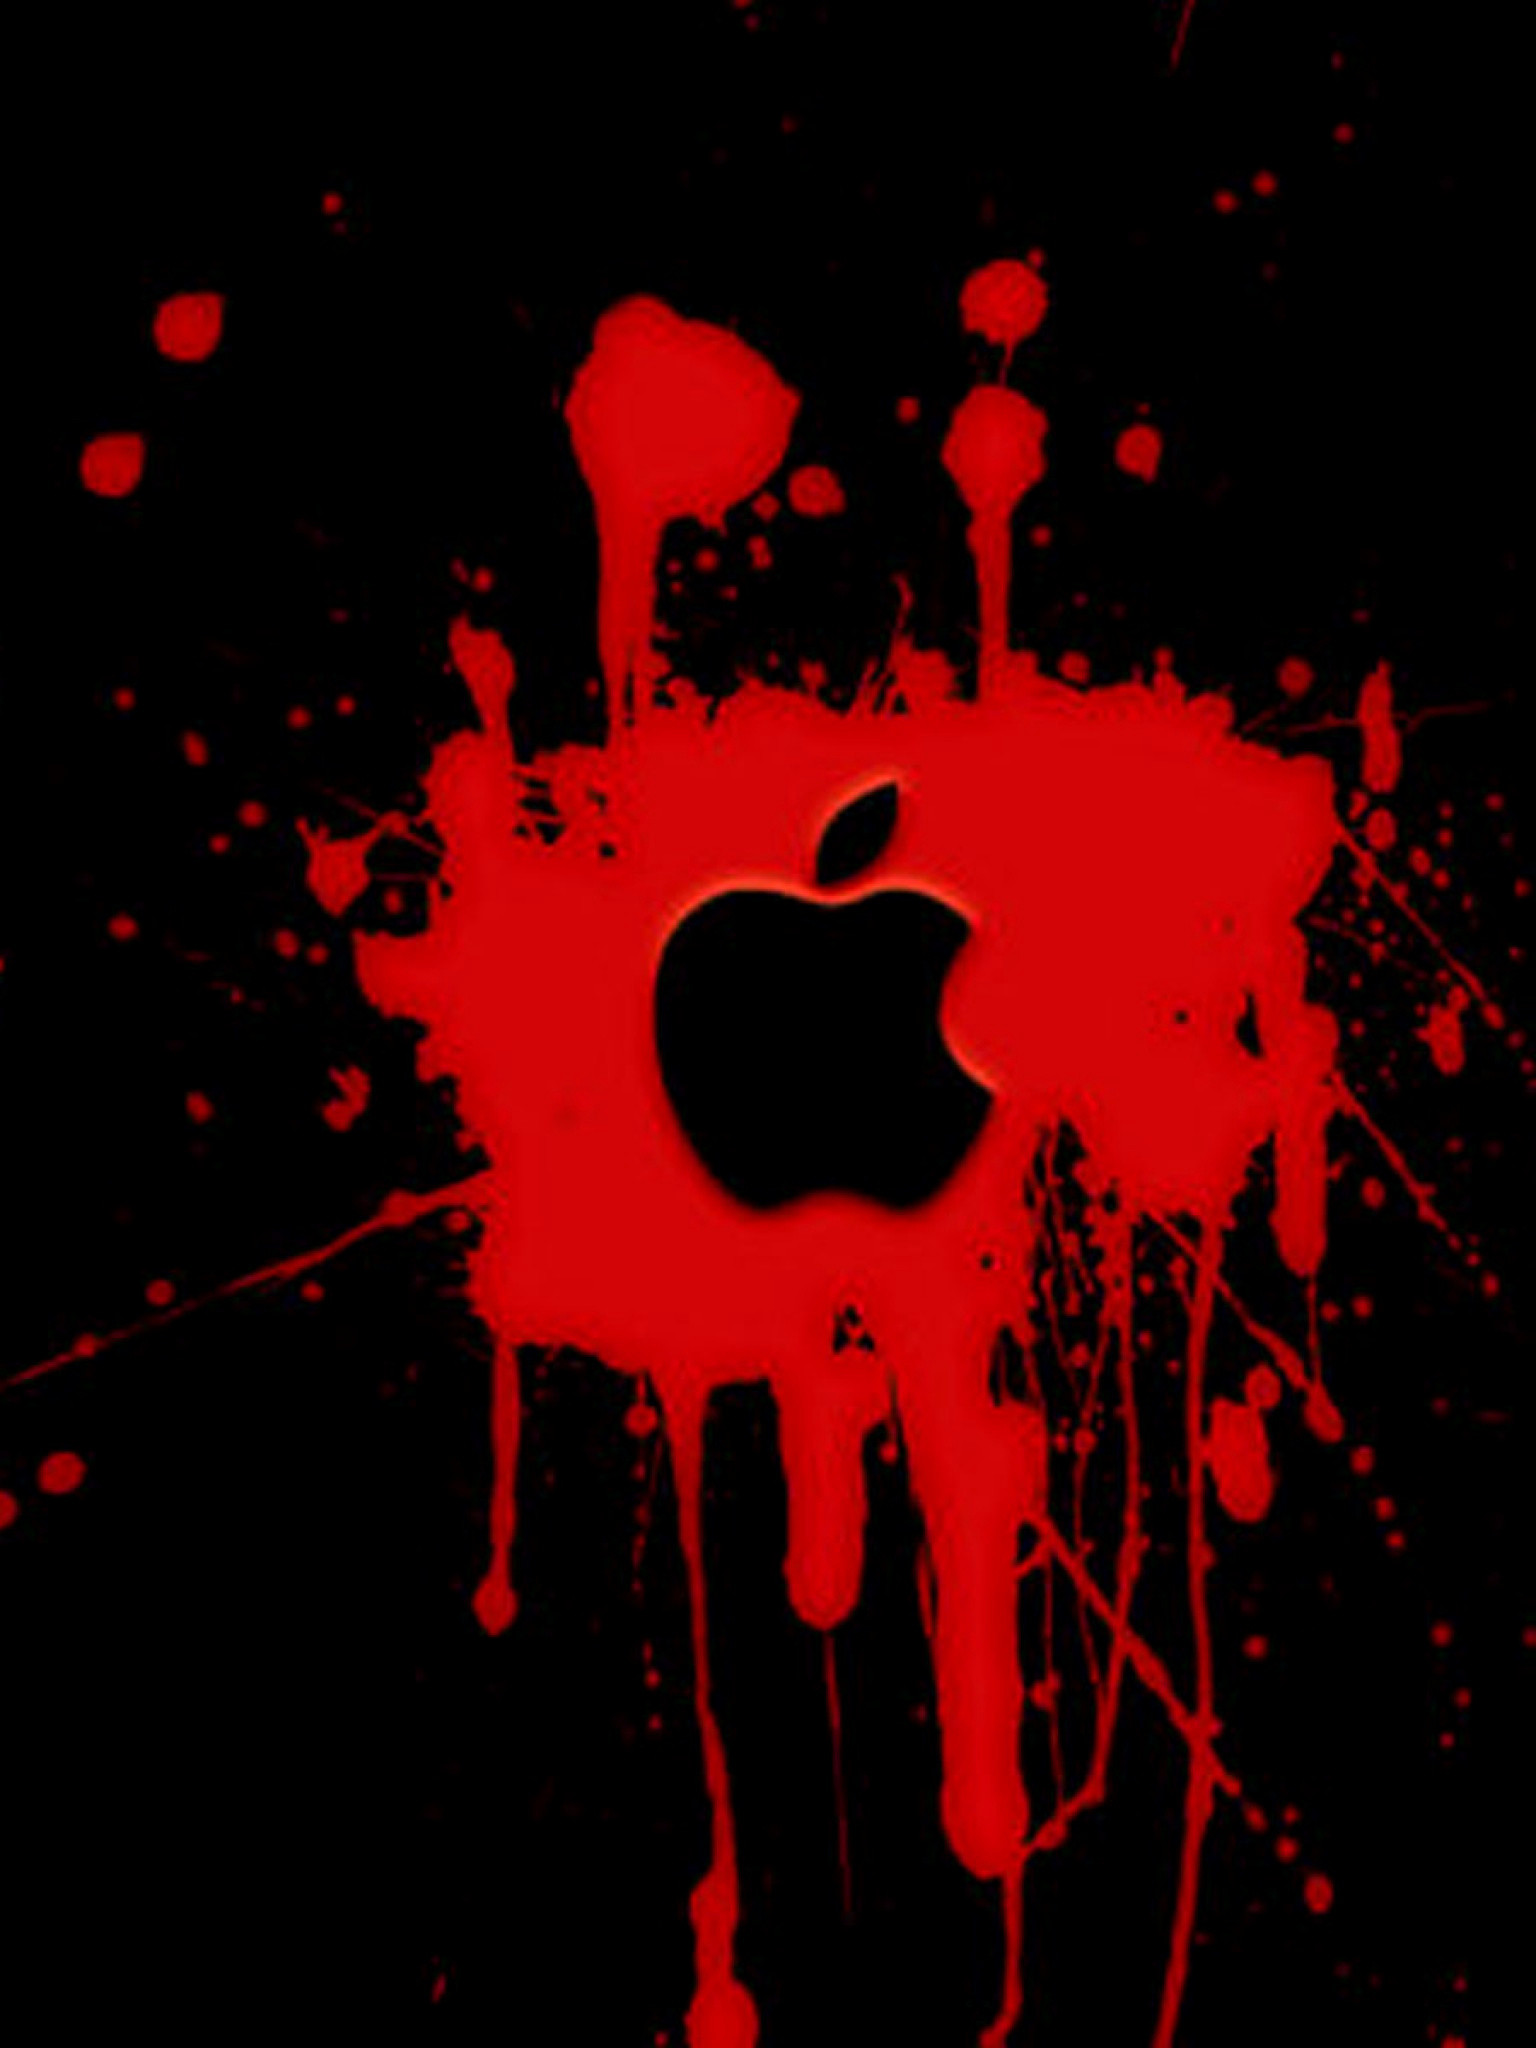 Black And Red Apple Wallpapers Apple Red Logo Hd Wallpaper For Iphone 6 1536x2048 Wallpaper Teahub Io